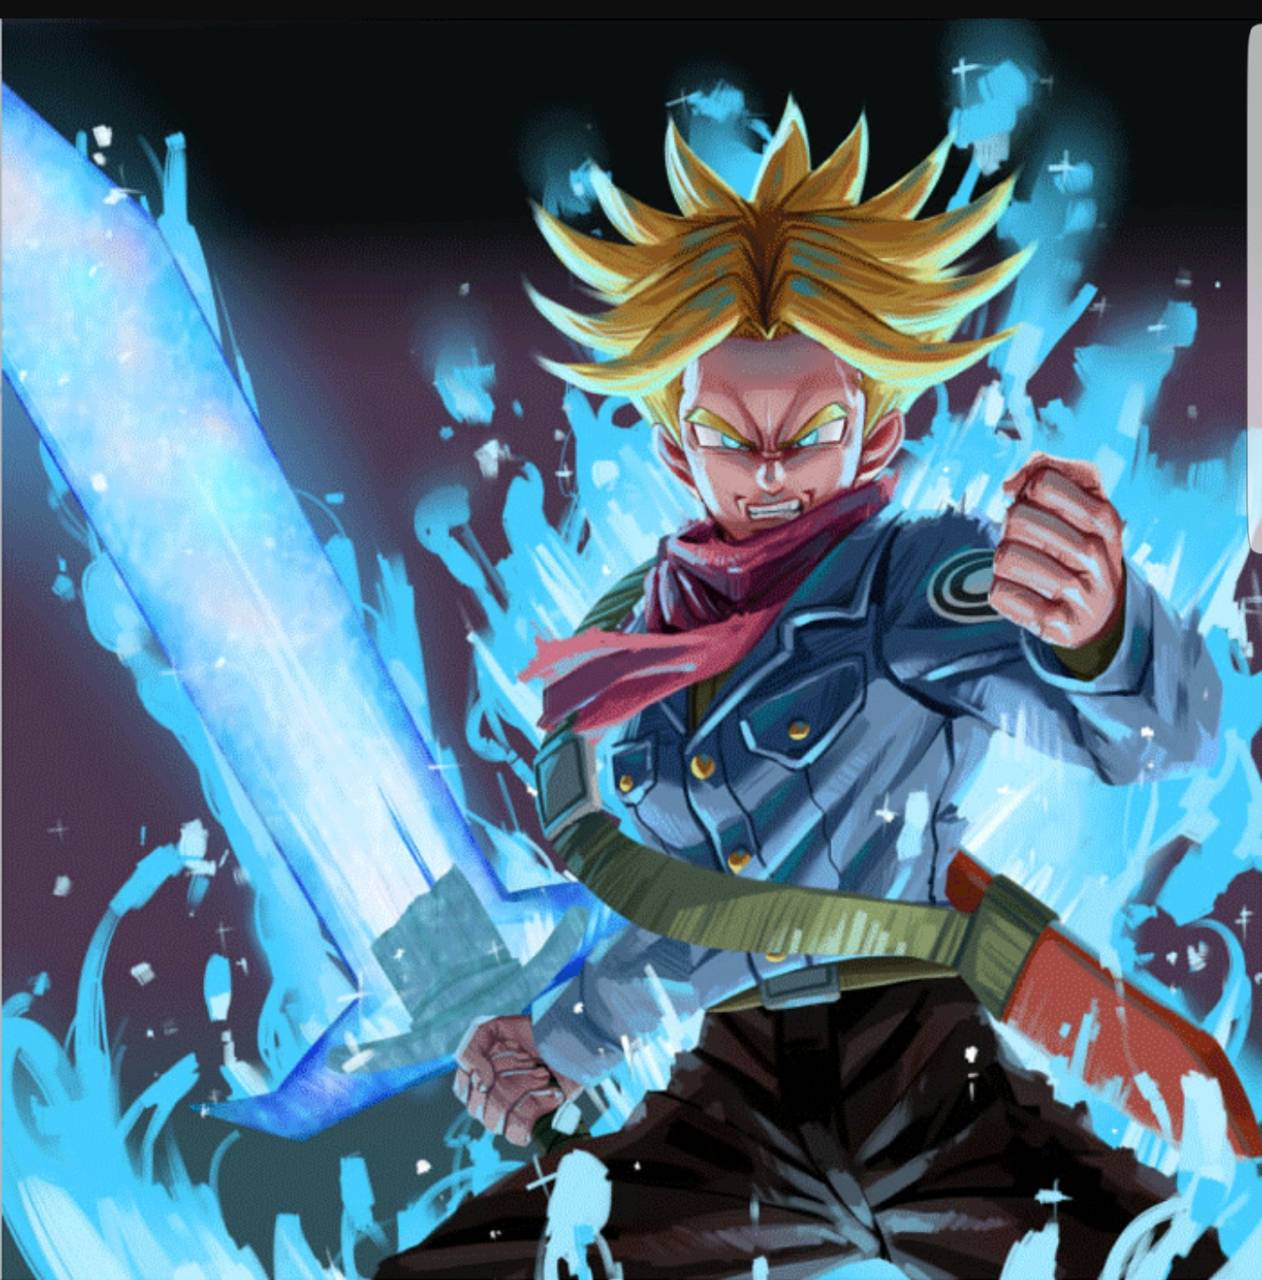 Dragon Ball Super Wallpaper Android Hd: Rage Trunks Wallpaper By WiLL2k8479